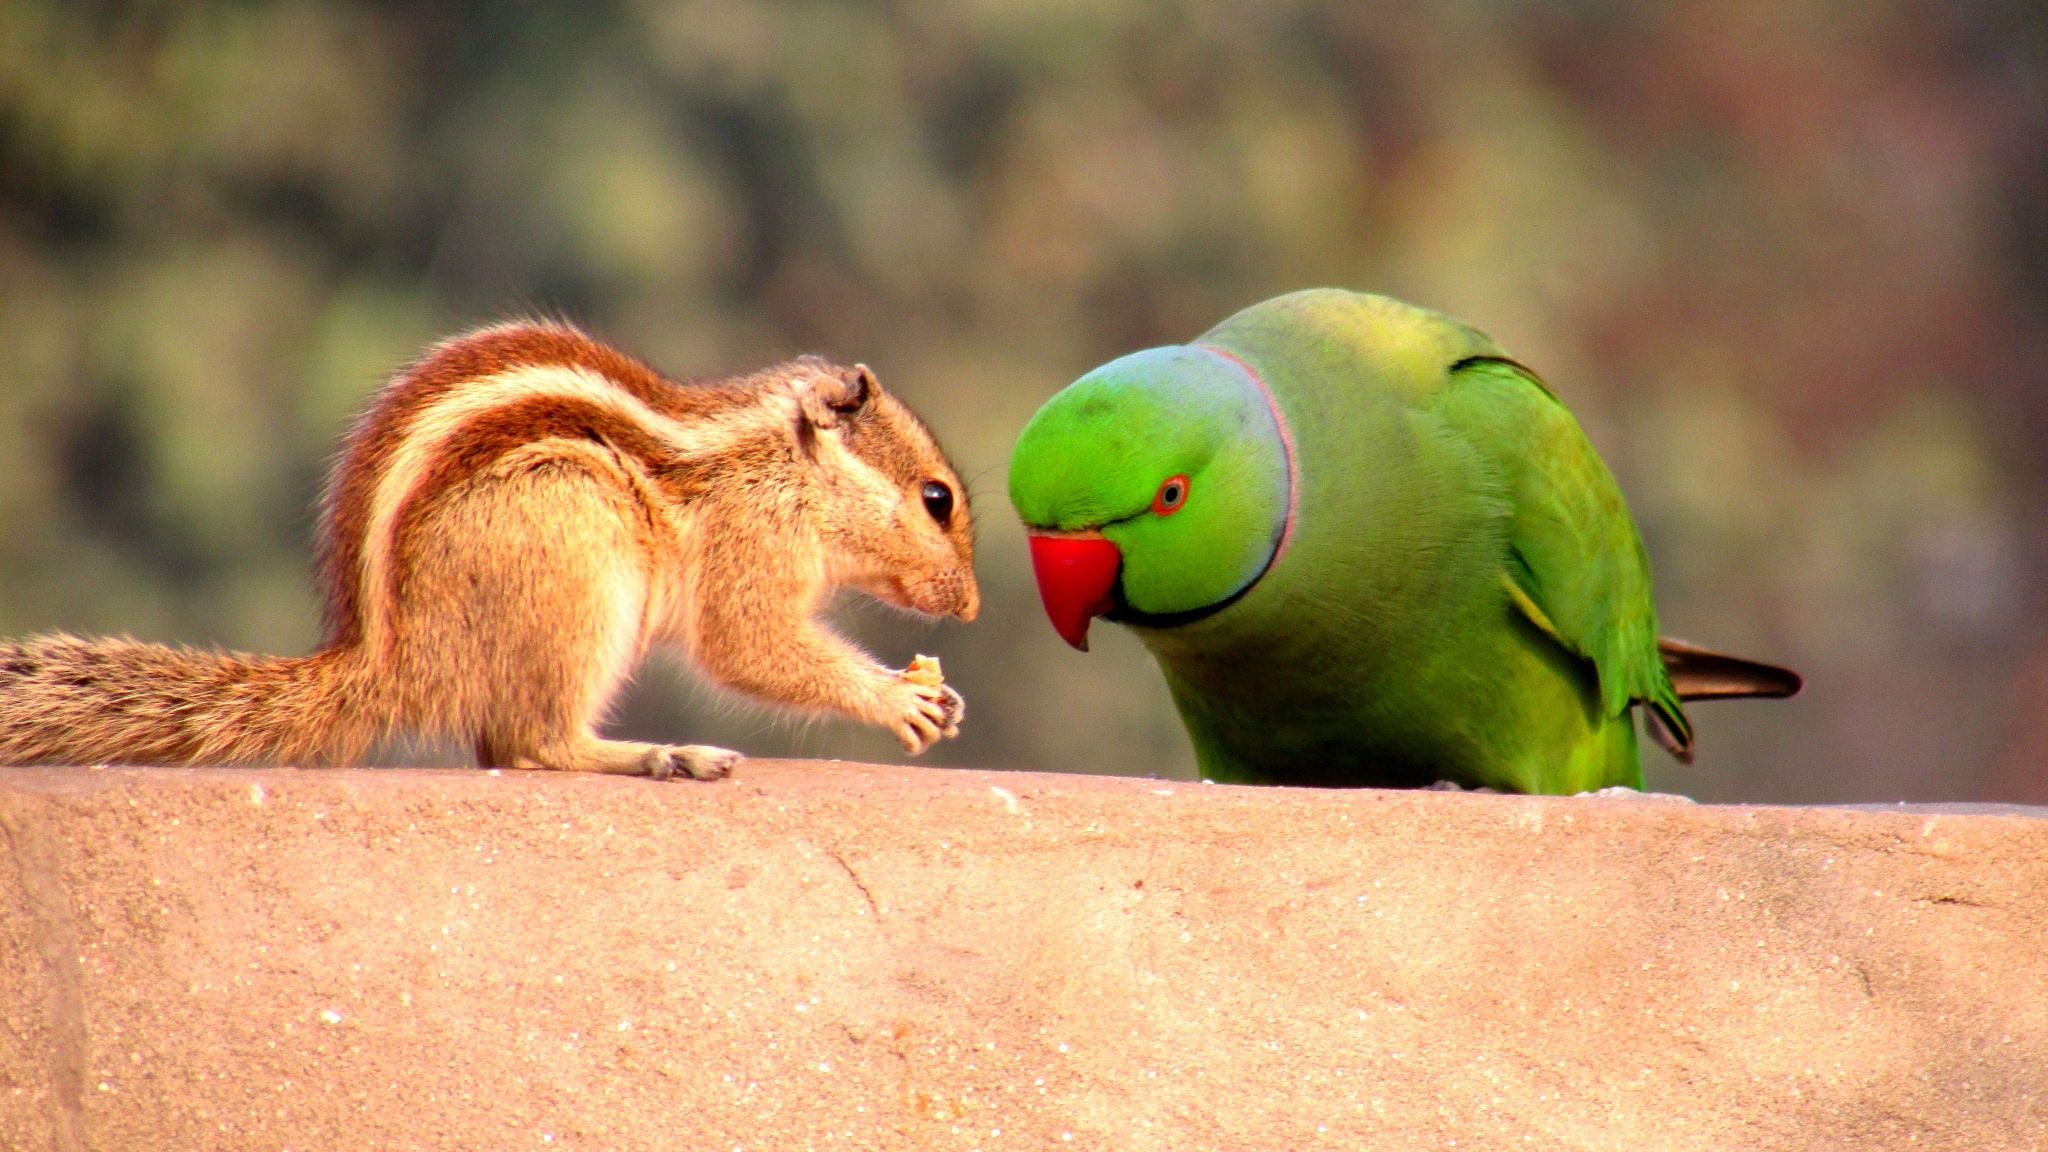 Its a story of a squirrel and a parrot lol....... talking with love ;)